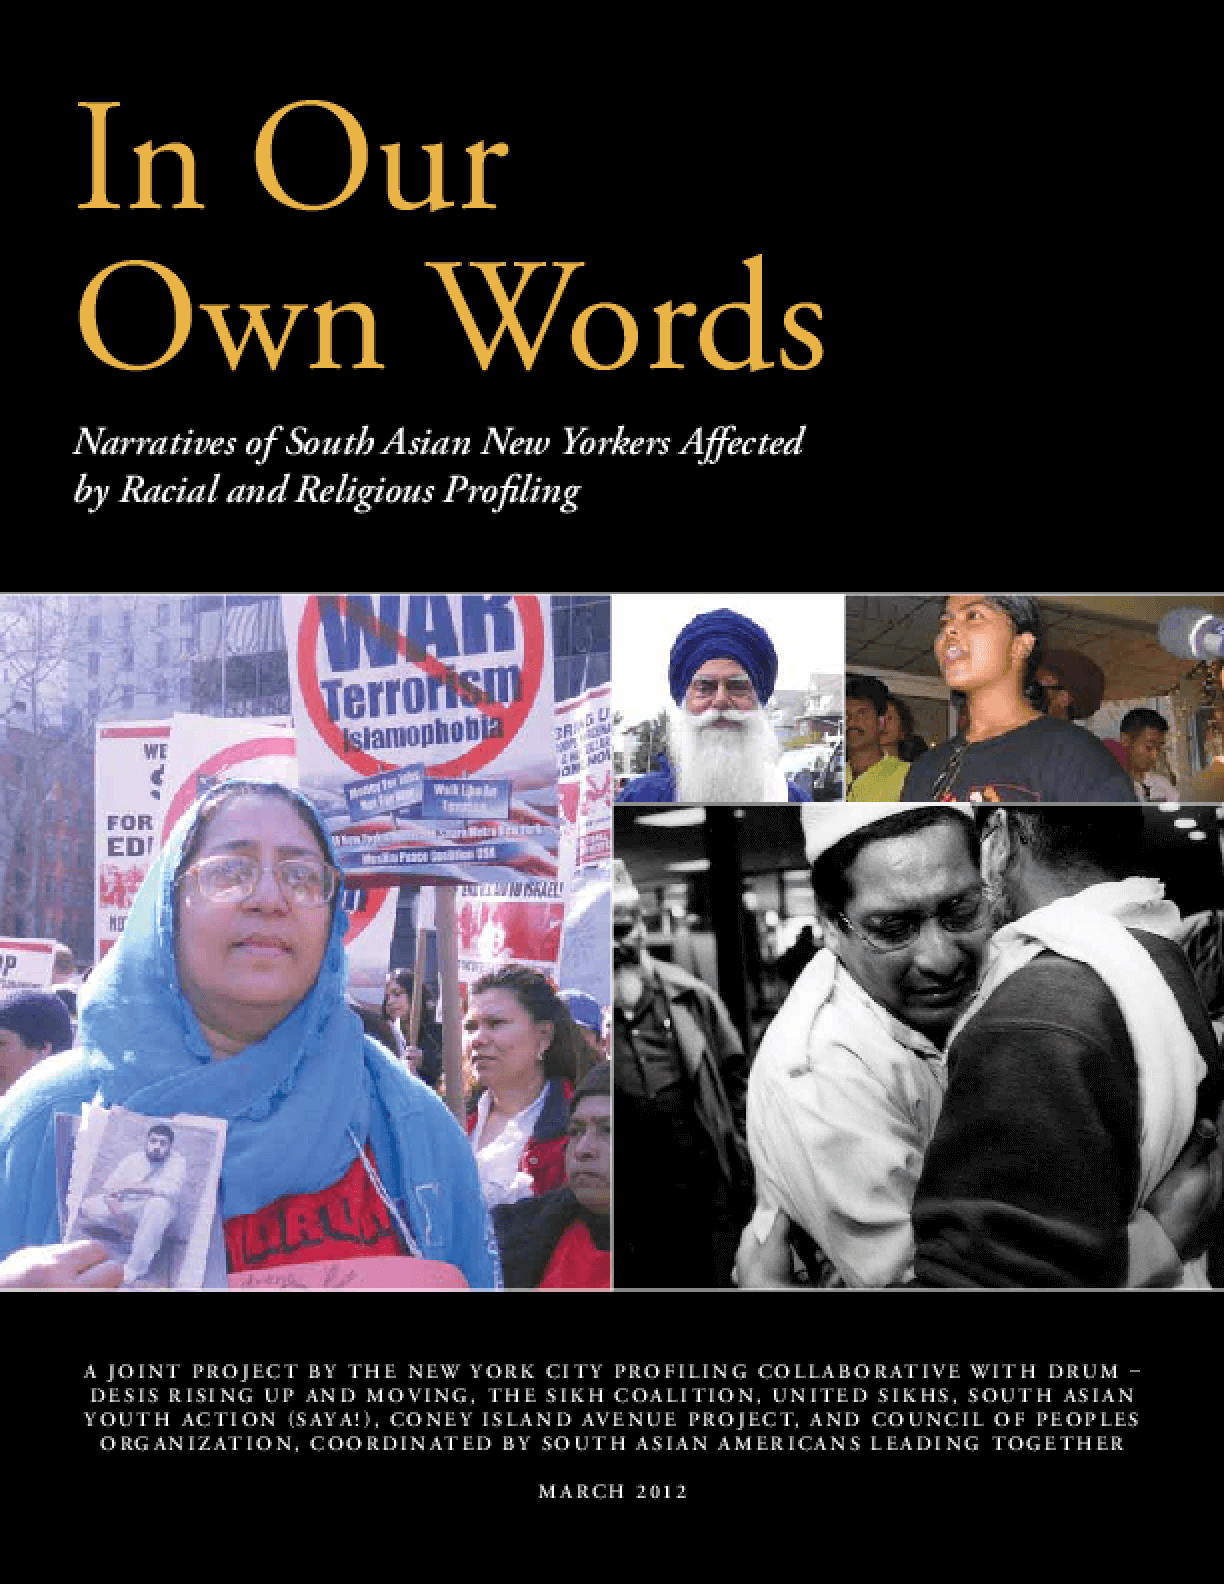 In Our Own Words: Narratives of South Asian New Yorkers Affected by Racial and Religious Profiling